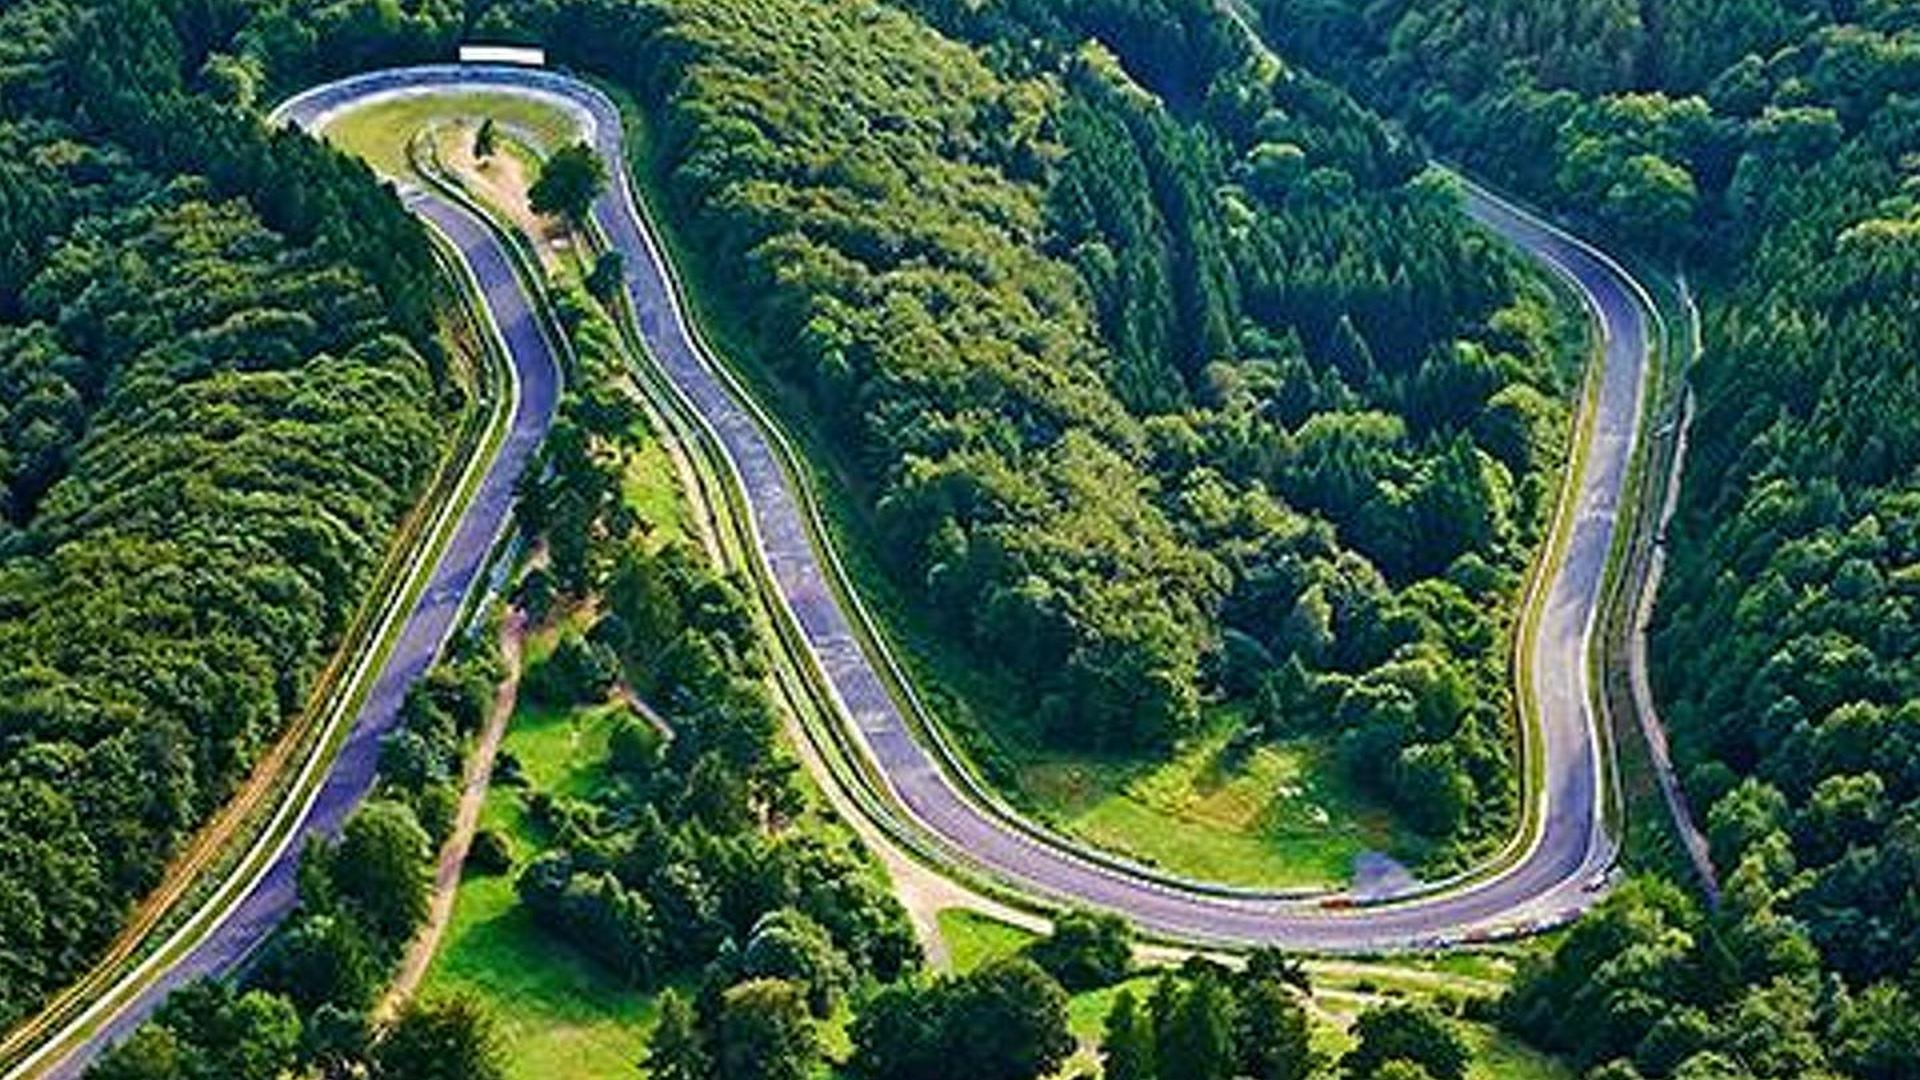 Nurburgring records ban to be lifted, several changes announced